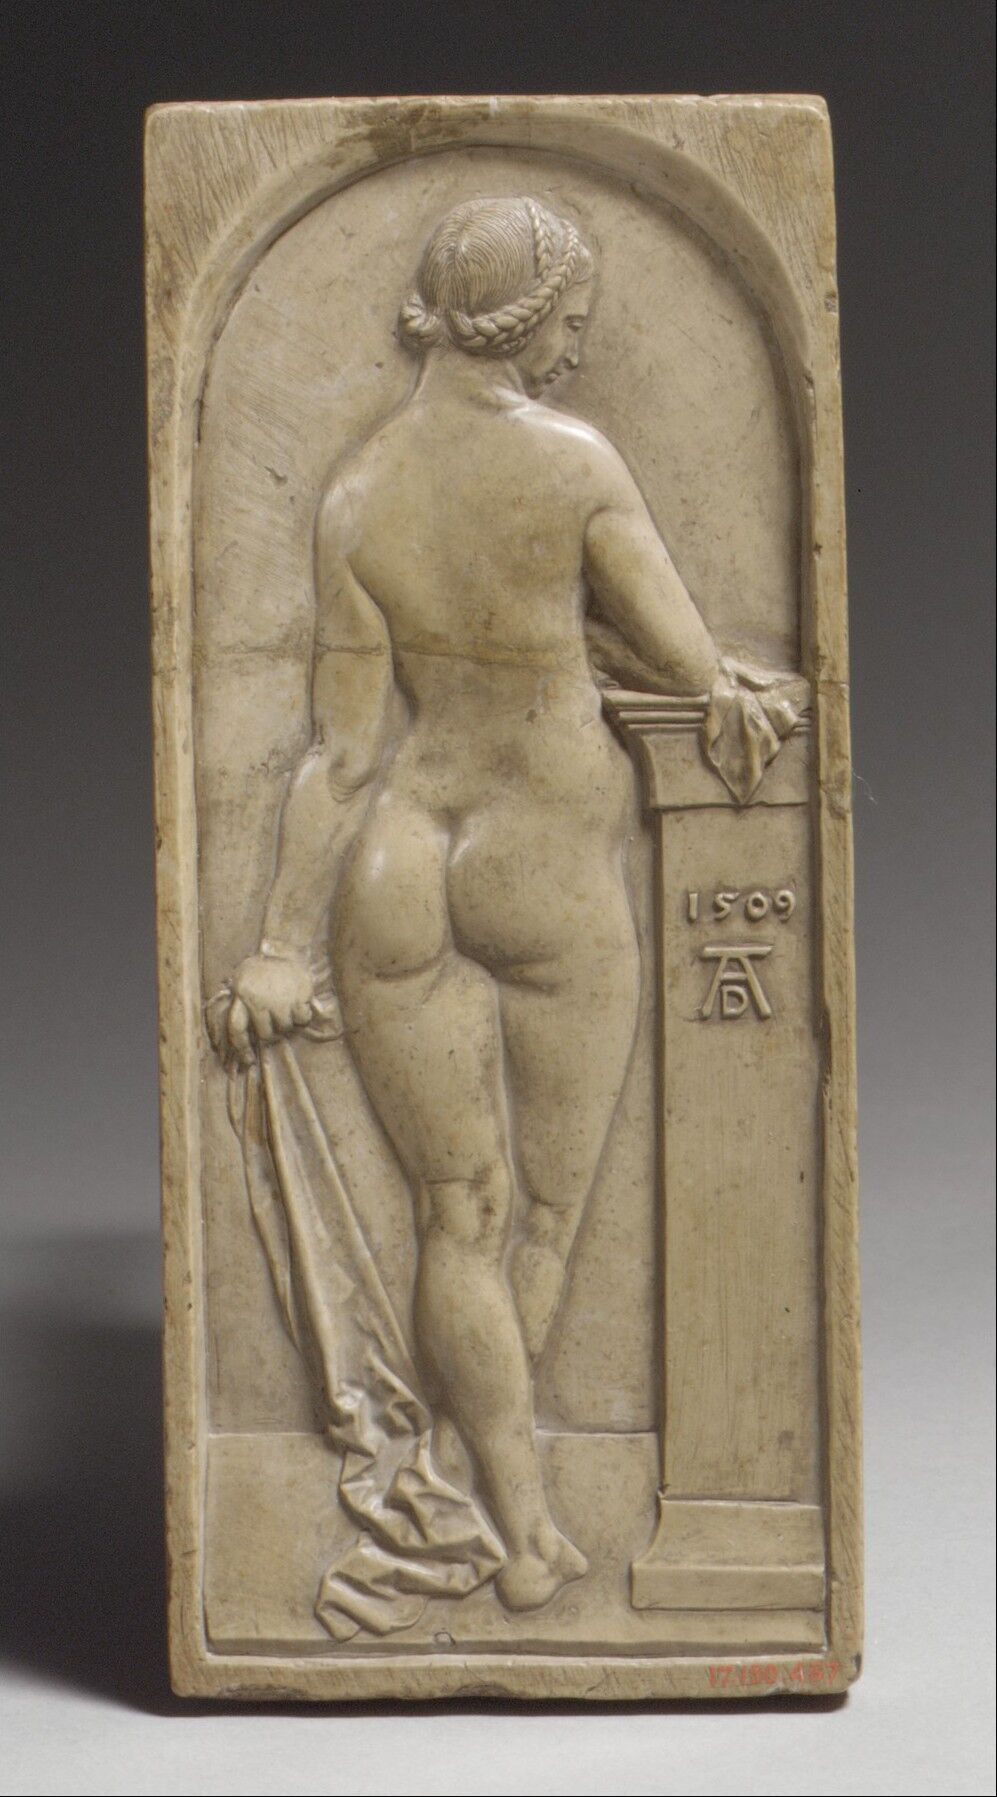 After a composition by Albrecht Dürer, Female Nude Seen from Behind, early 17th century. Gift of J. Pierpont Morgan, 1917. Courtesy of the Metropolitan Museum of Art.